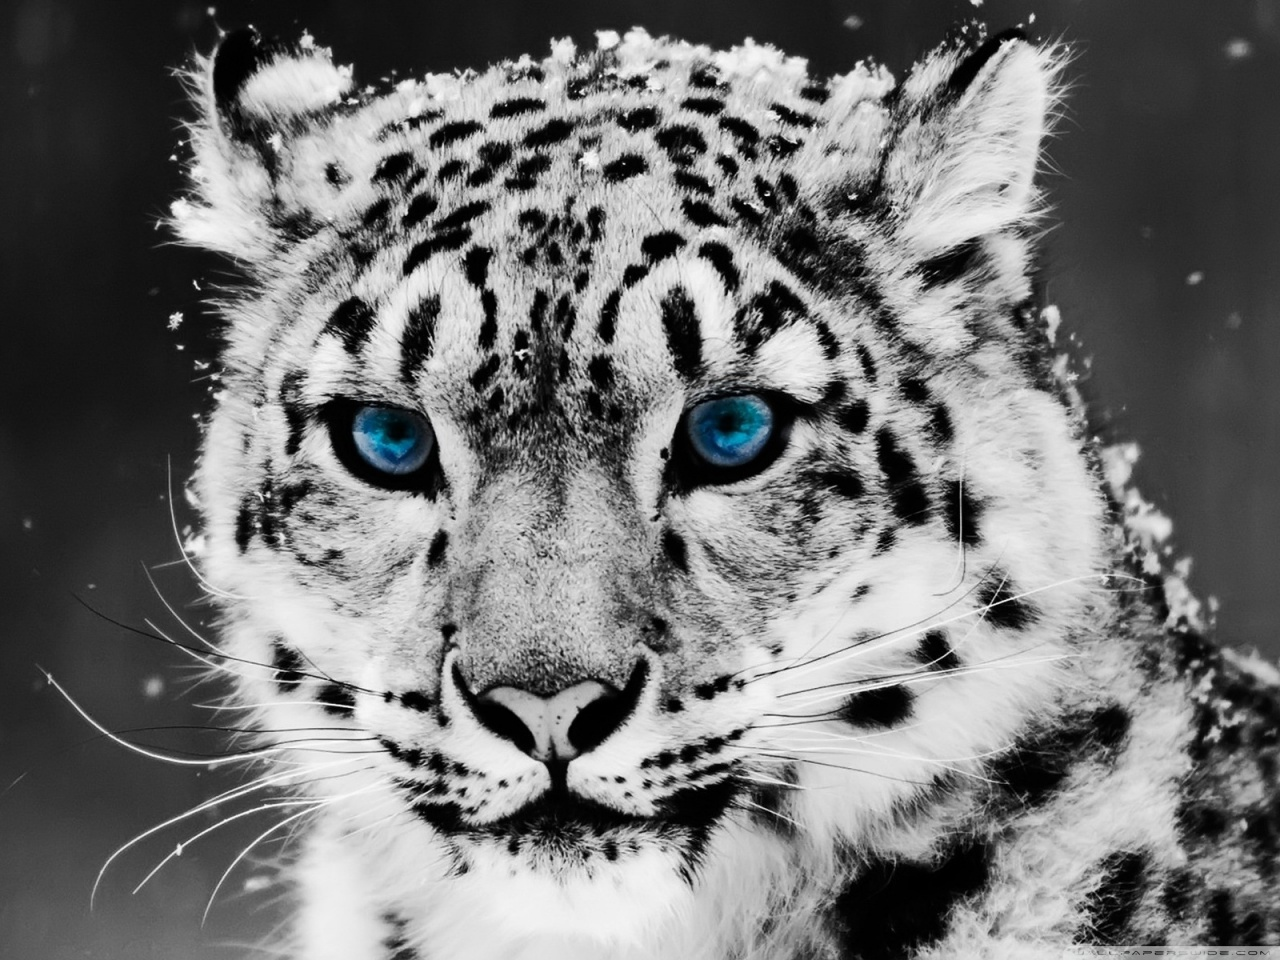 Snow Leopard - Black And White Portrait HD desktop wallpaper